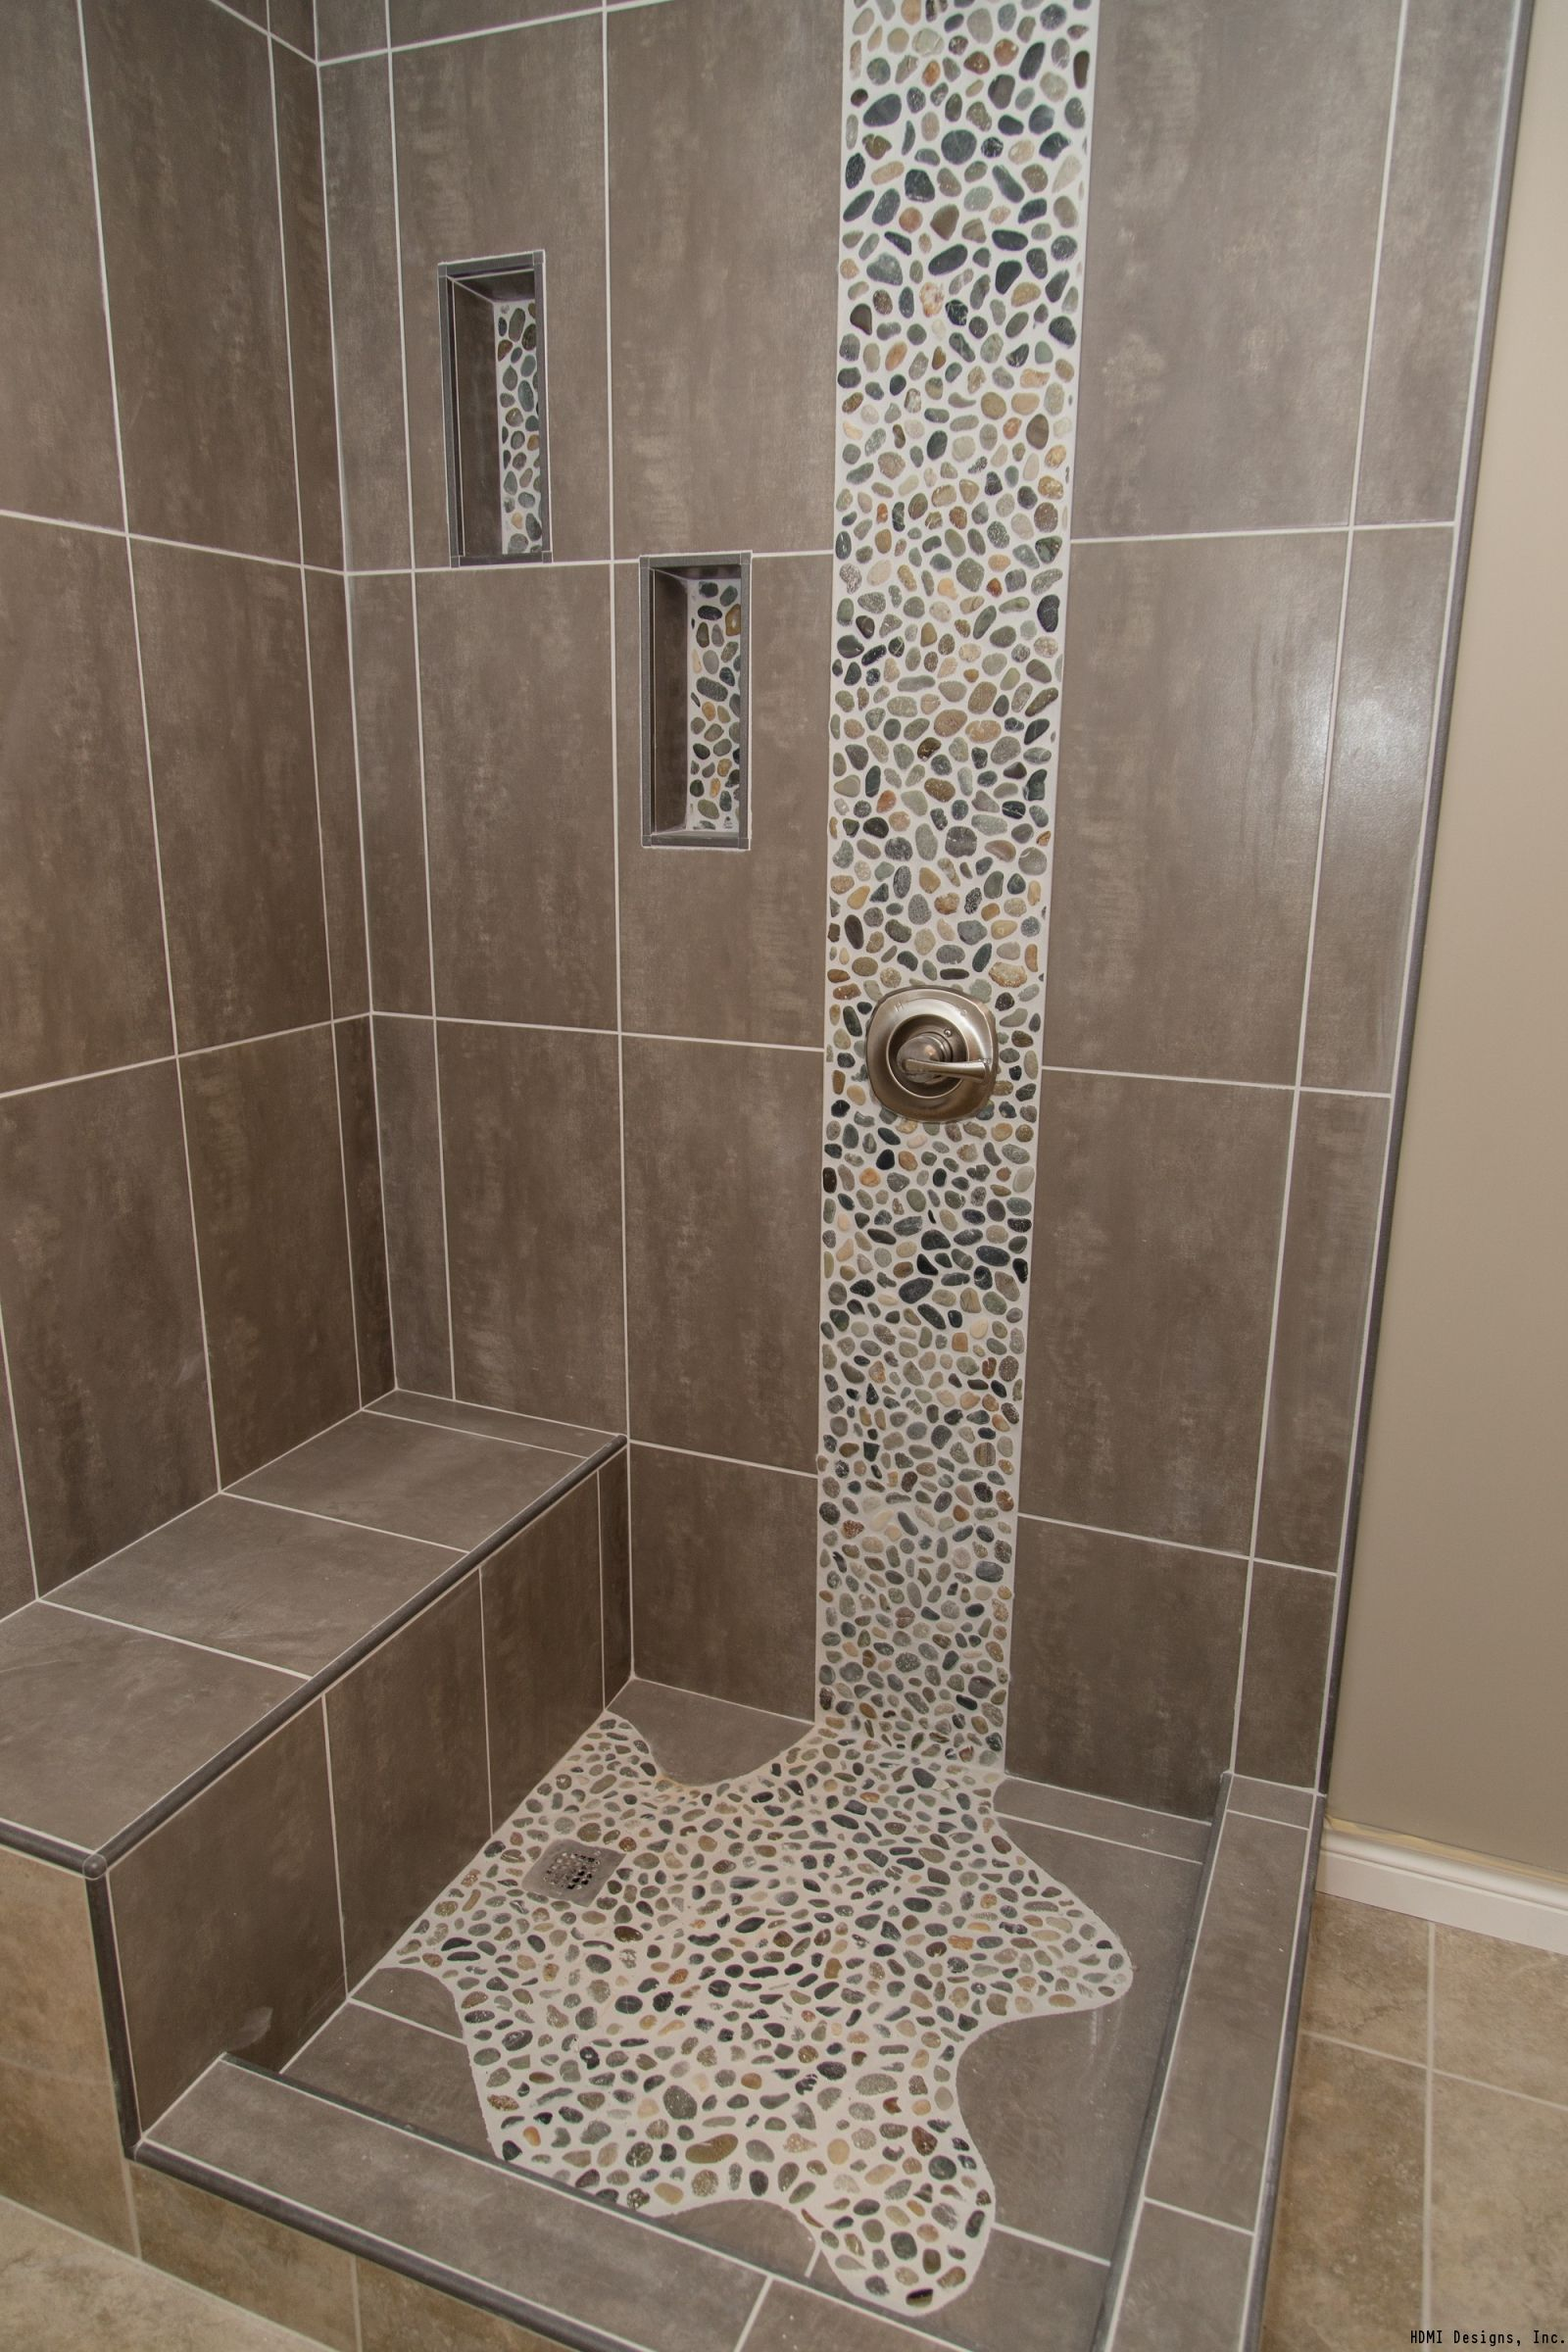 Spruce up your shower by adding pebble tile accents